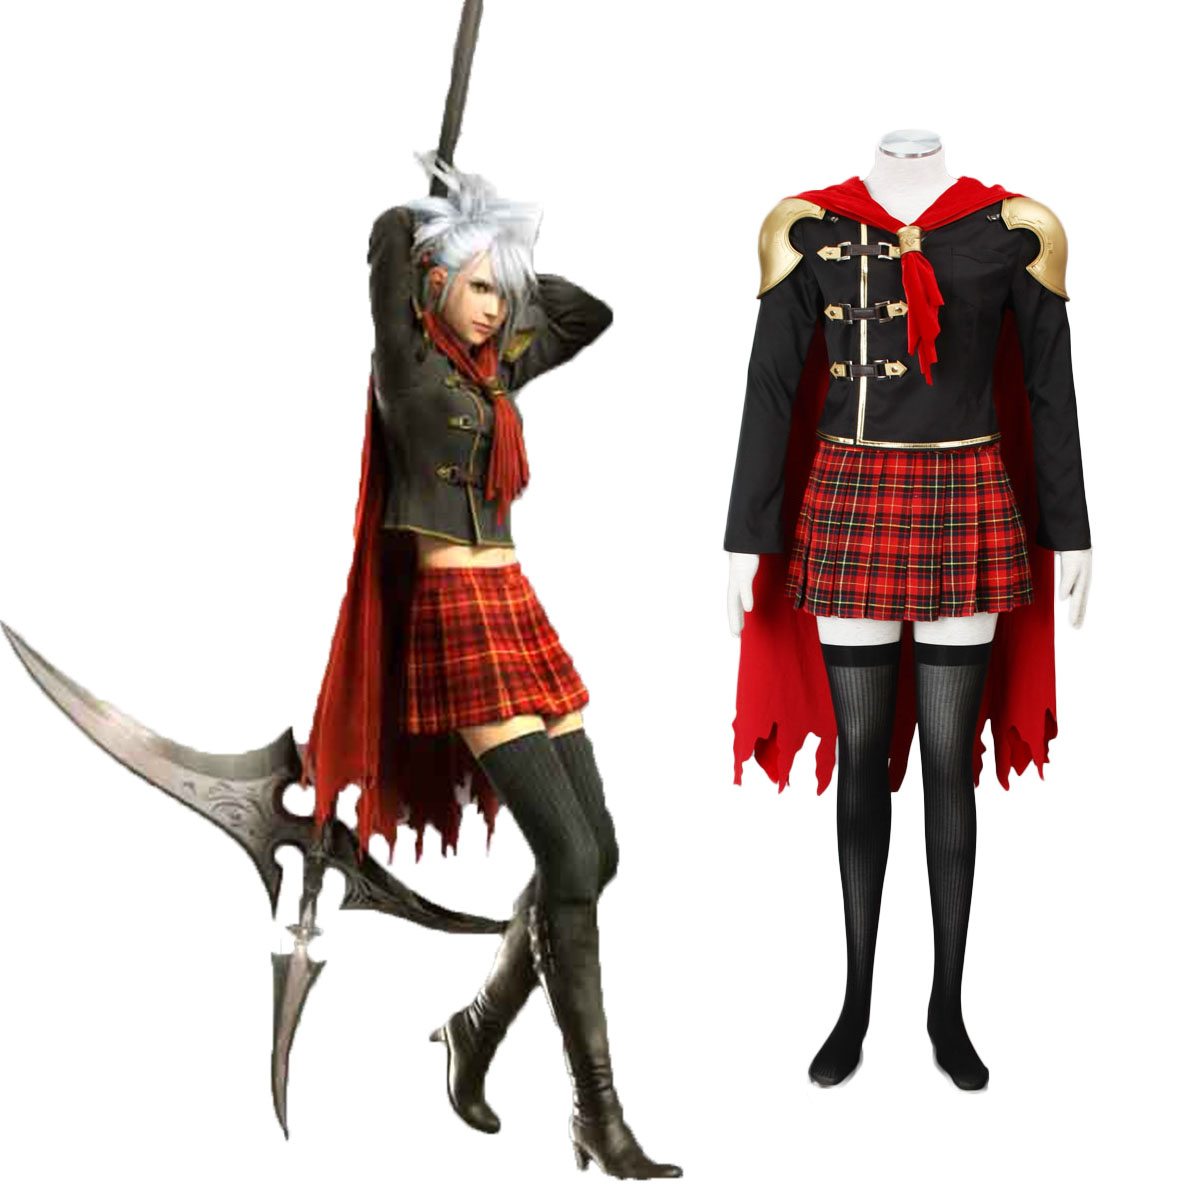 Final Fantasy Type-0 Sice 1 Cosplay Costumes AU